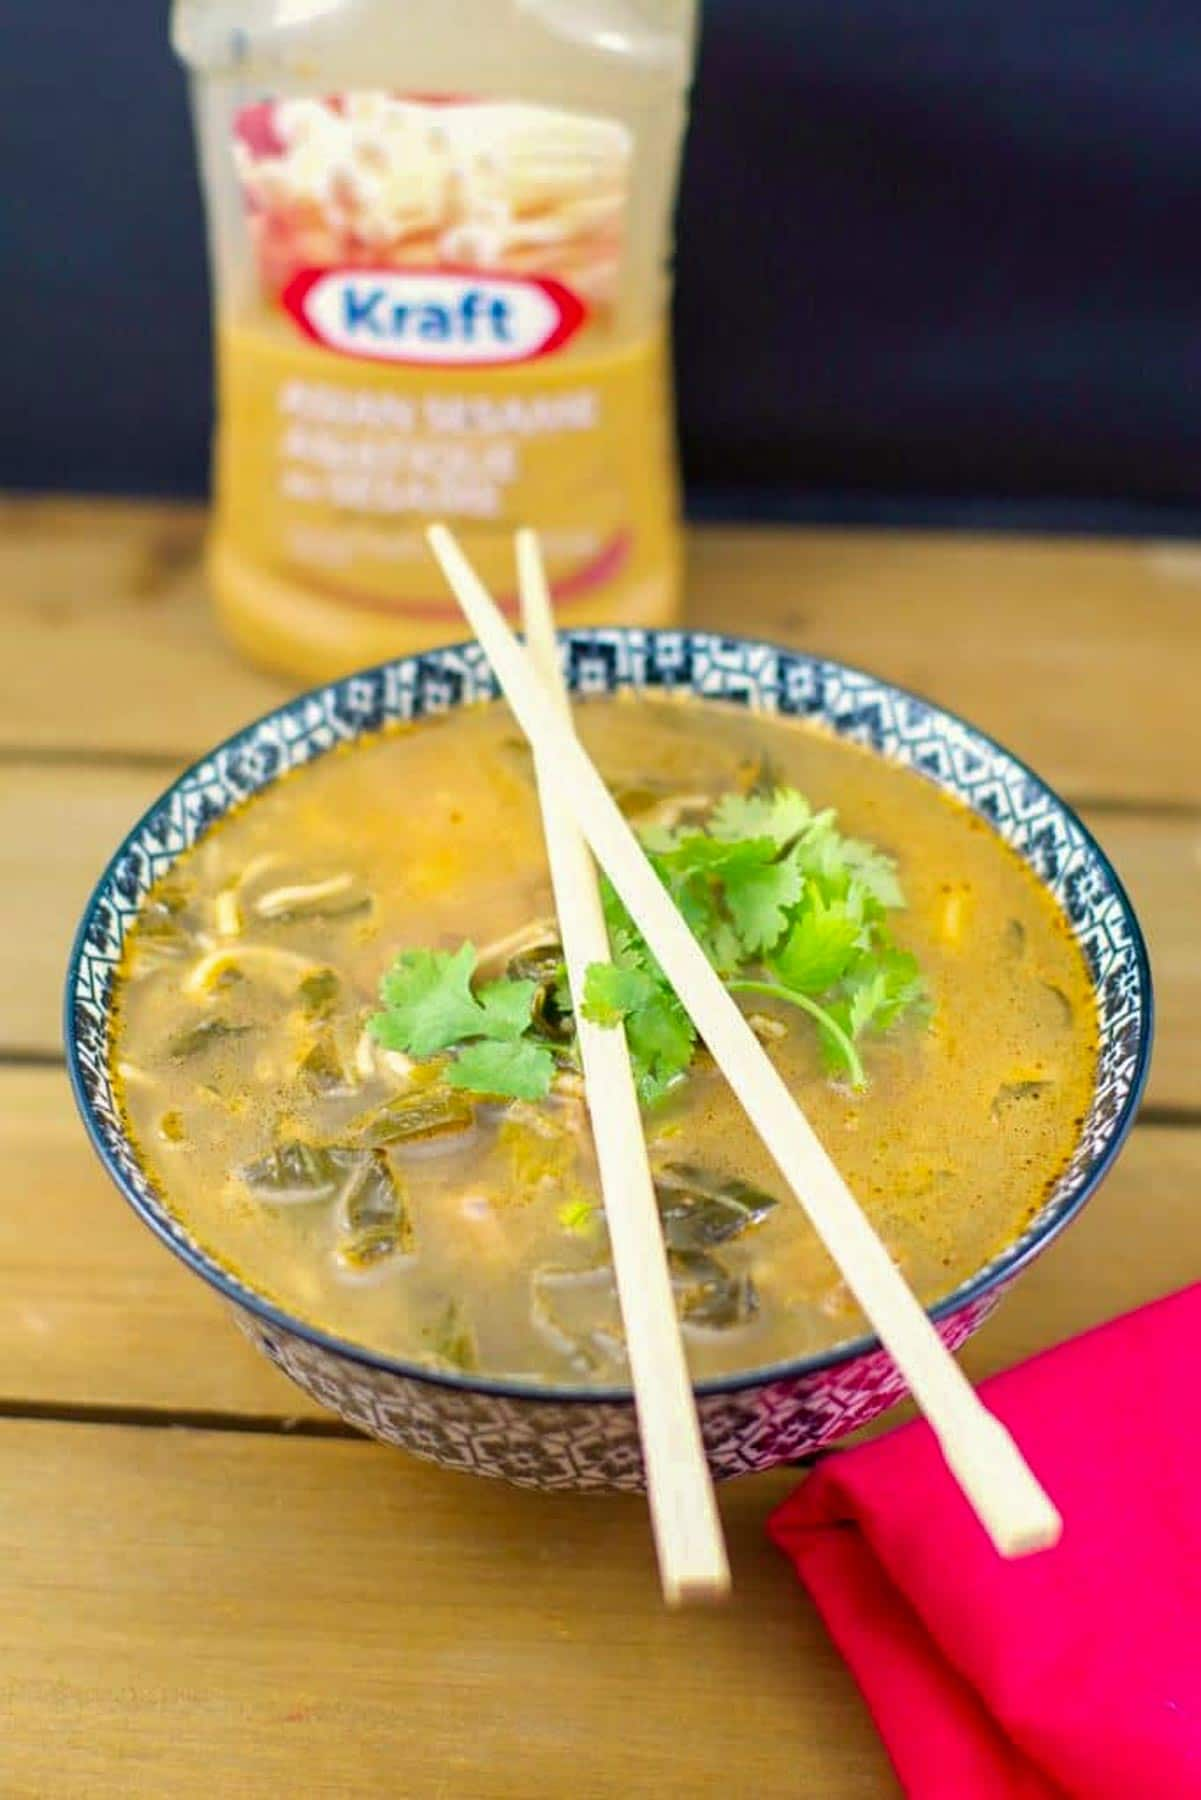 Quick Asian beef soup in a checkered bowl with chopsticks on top of the bowl and a bottle of Asian Sesame salad dressing in the background